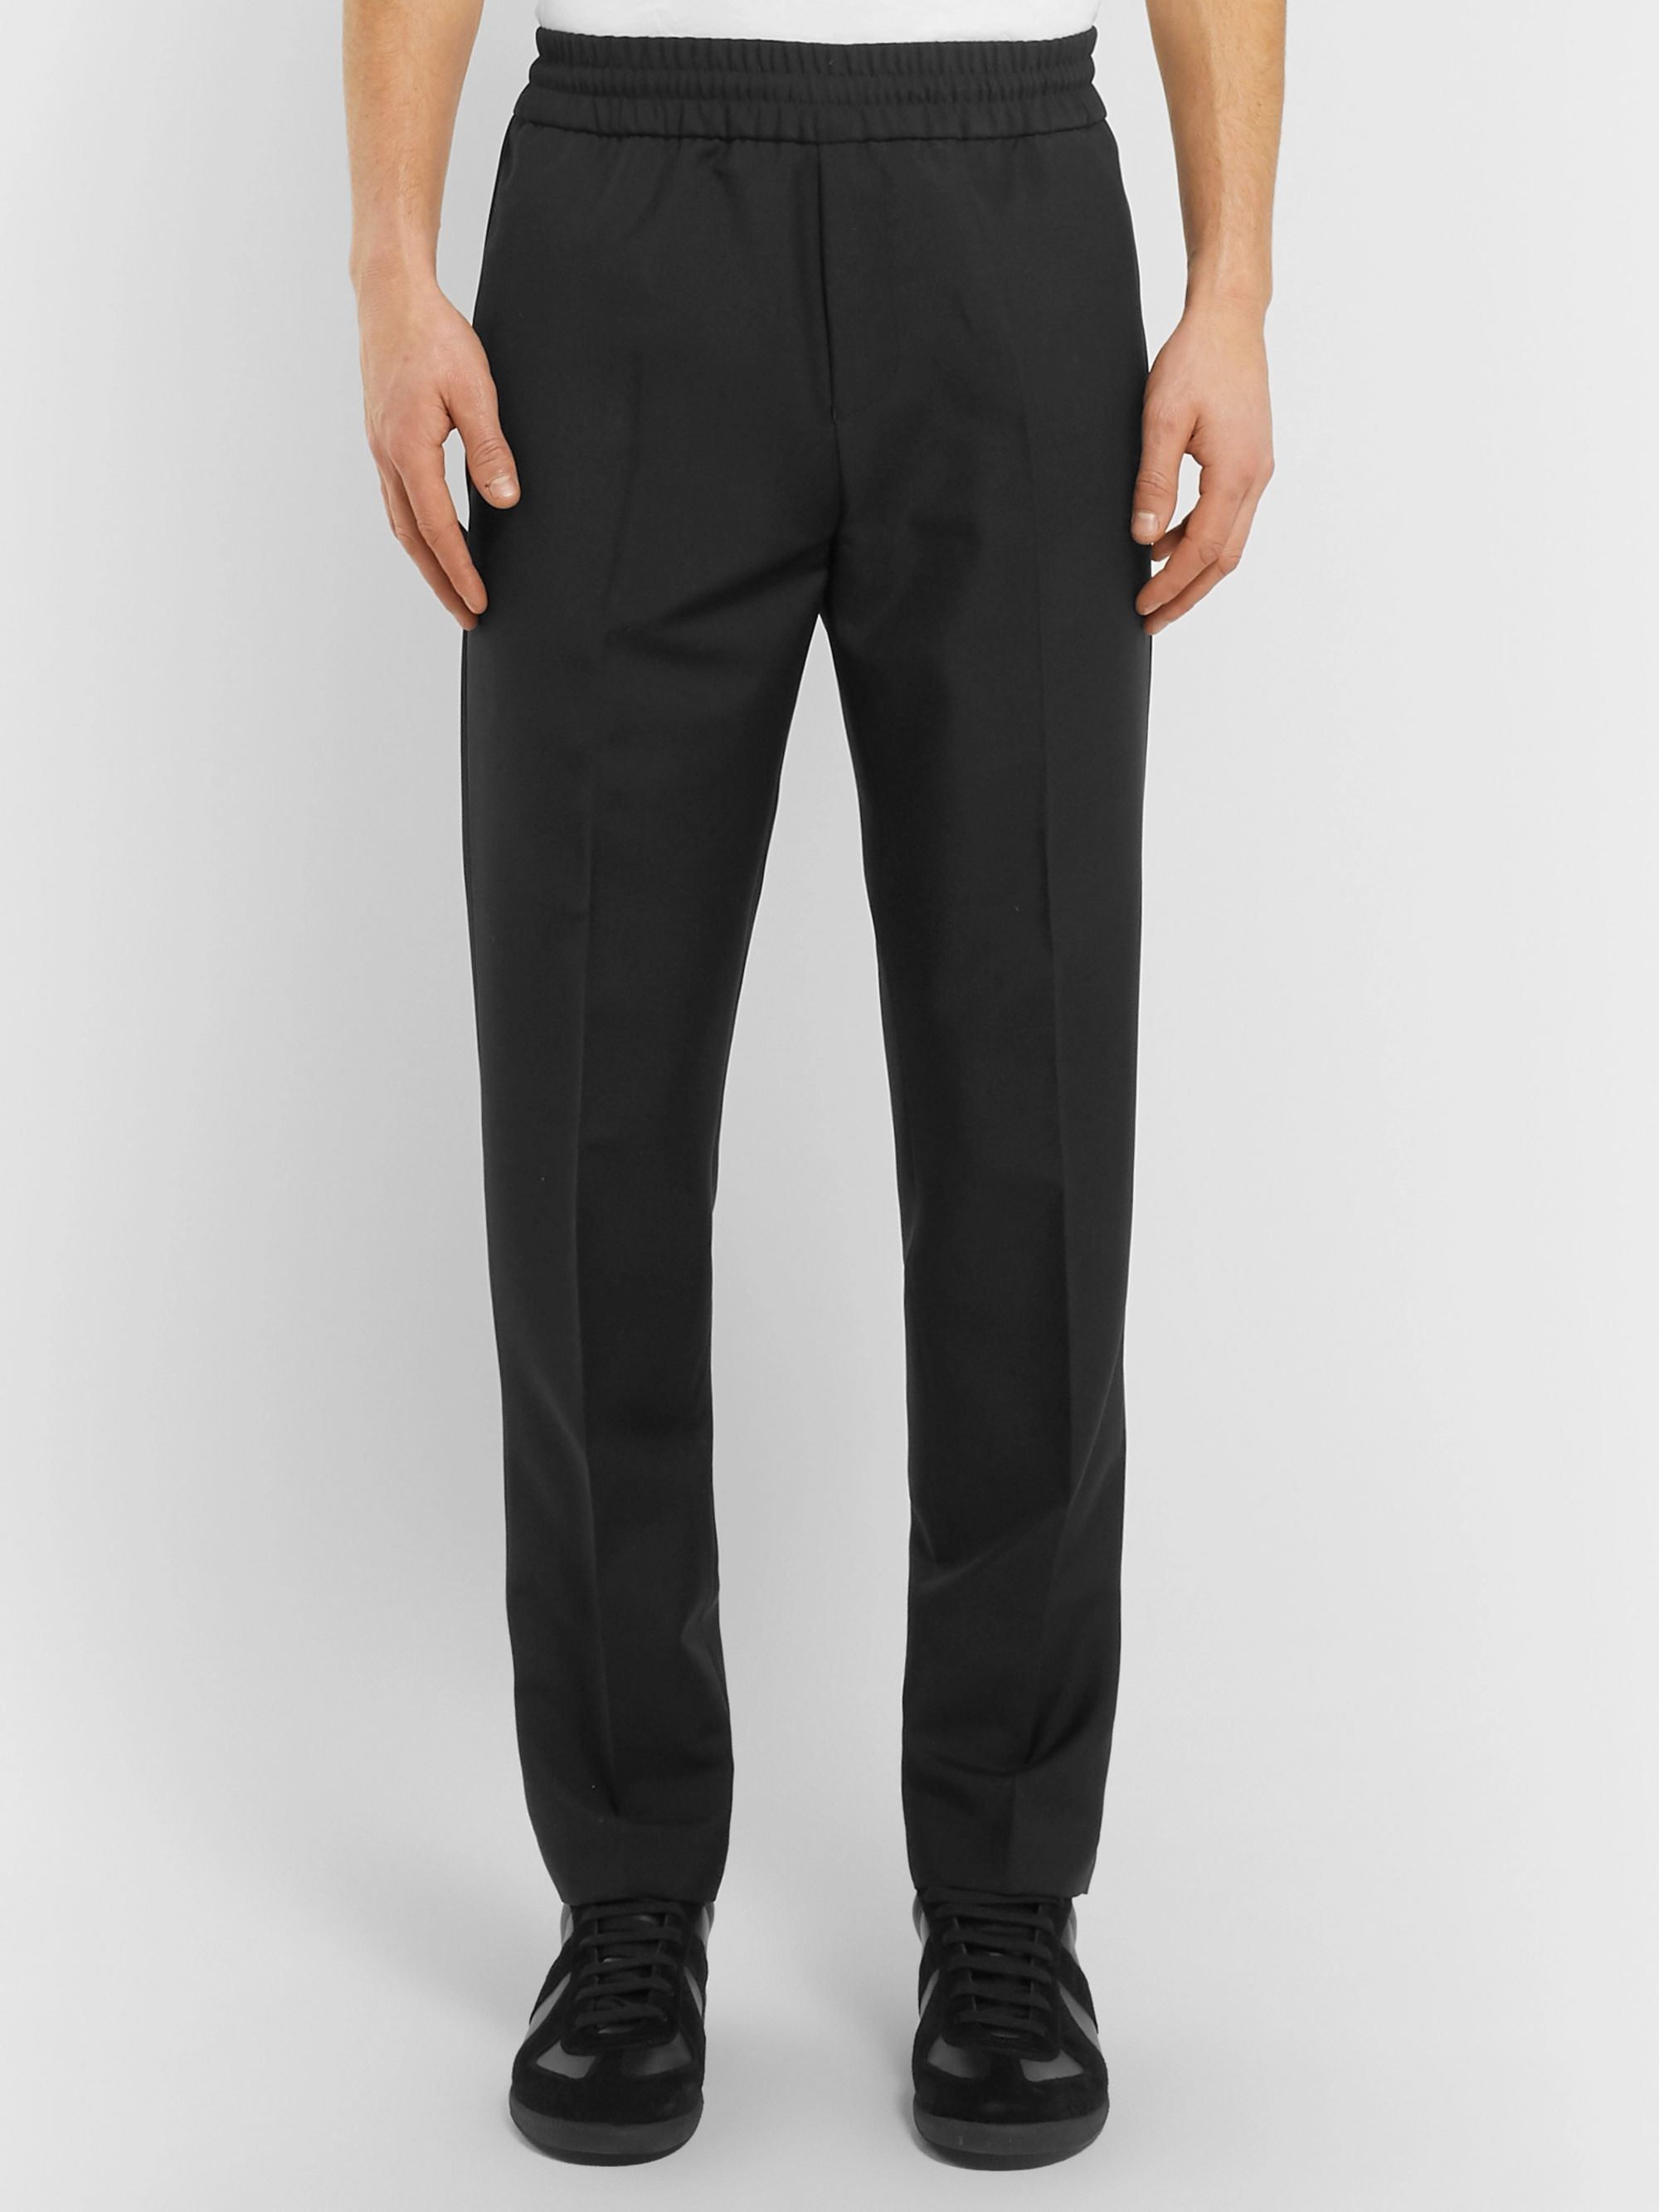 Acne Studios Black Ryder Tapered Wool and Mohair-Blend Trousers